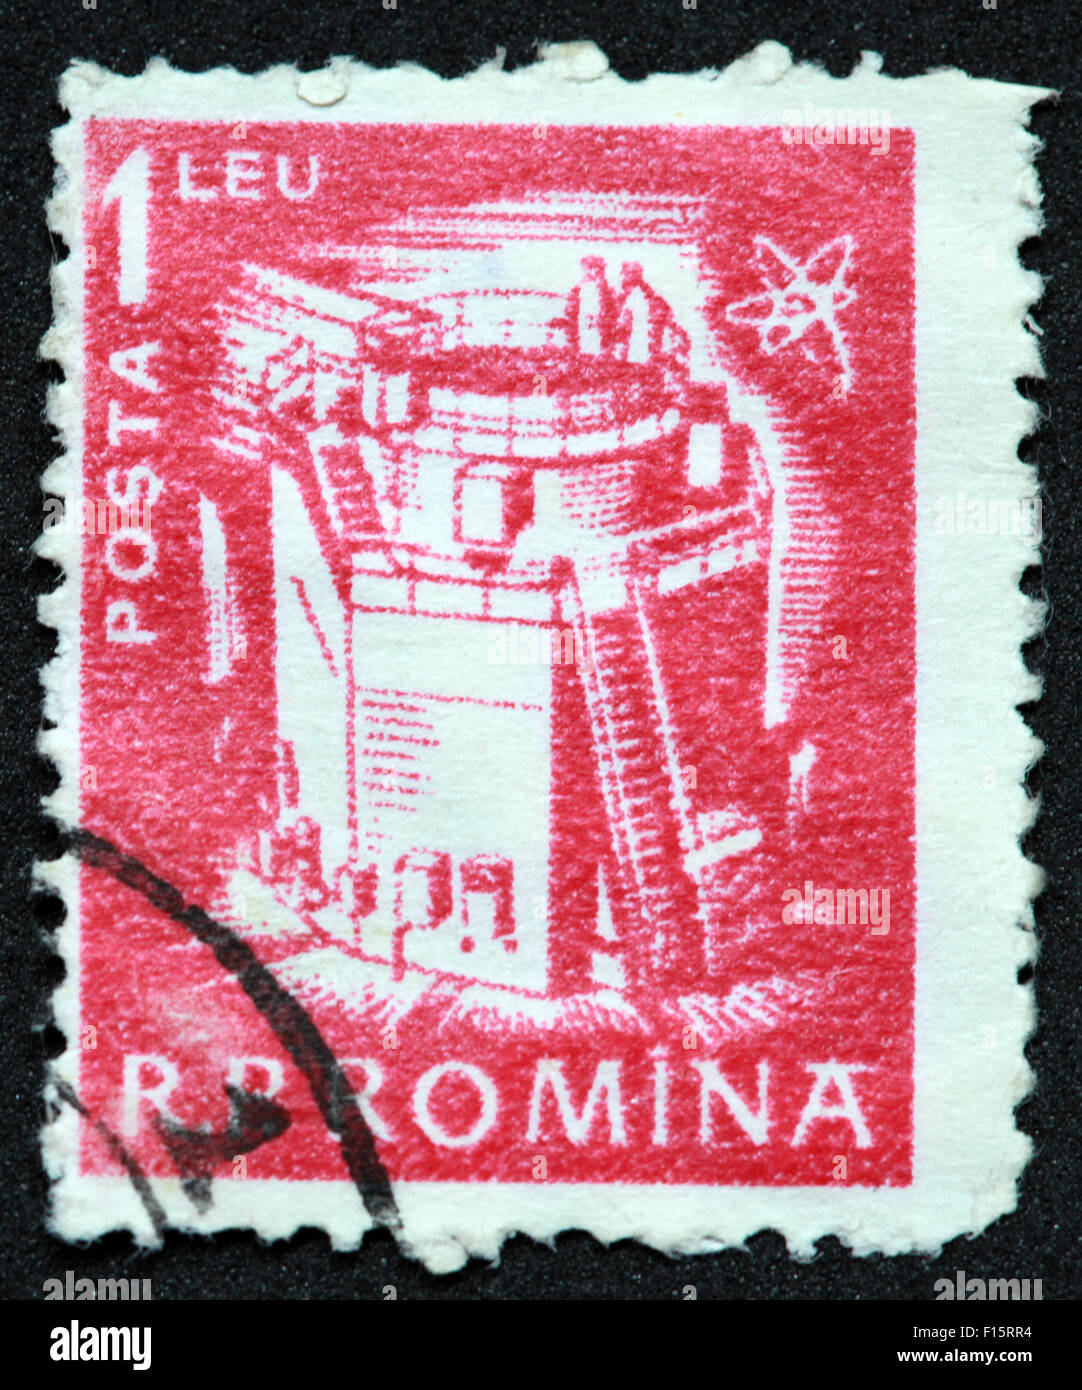 RP Romina 1leu Posta red stamp Stock Photo